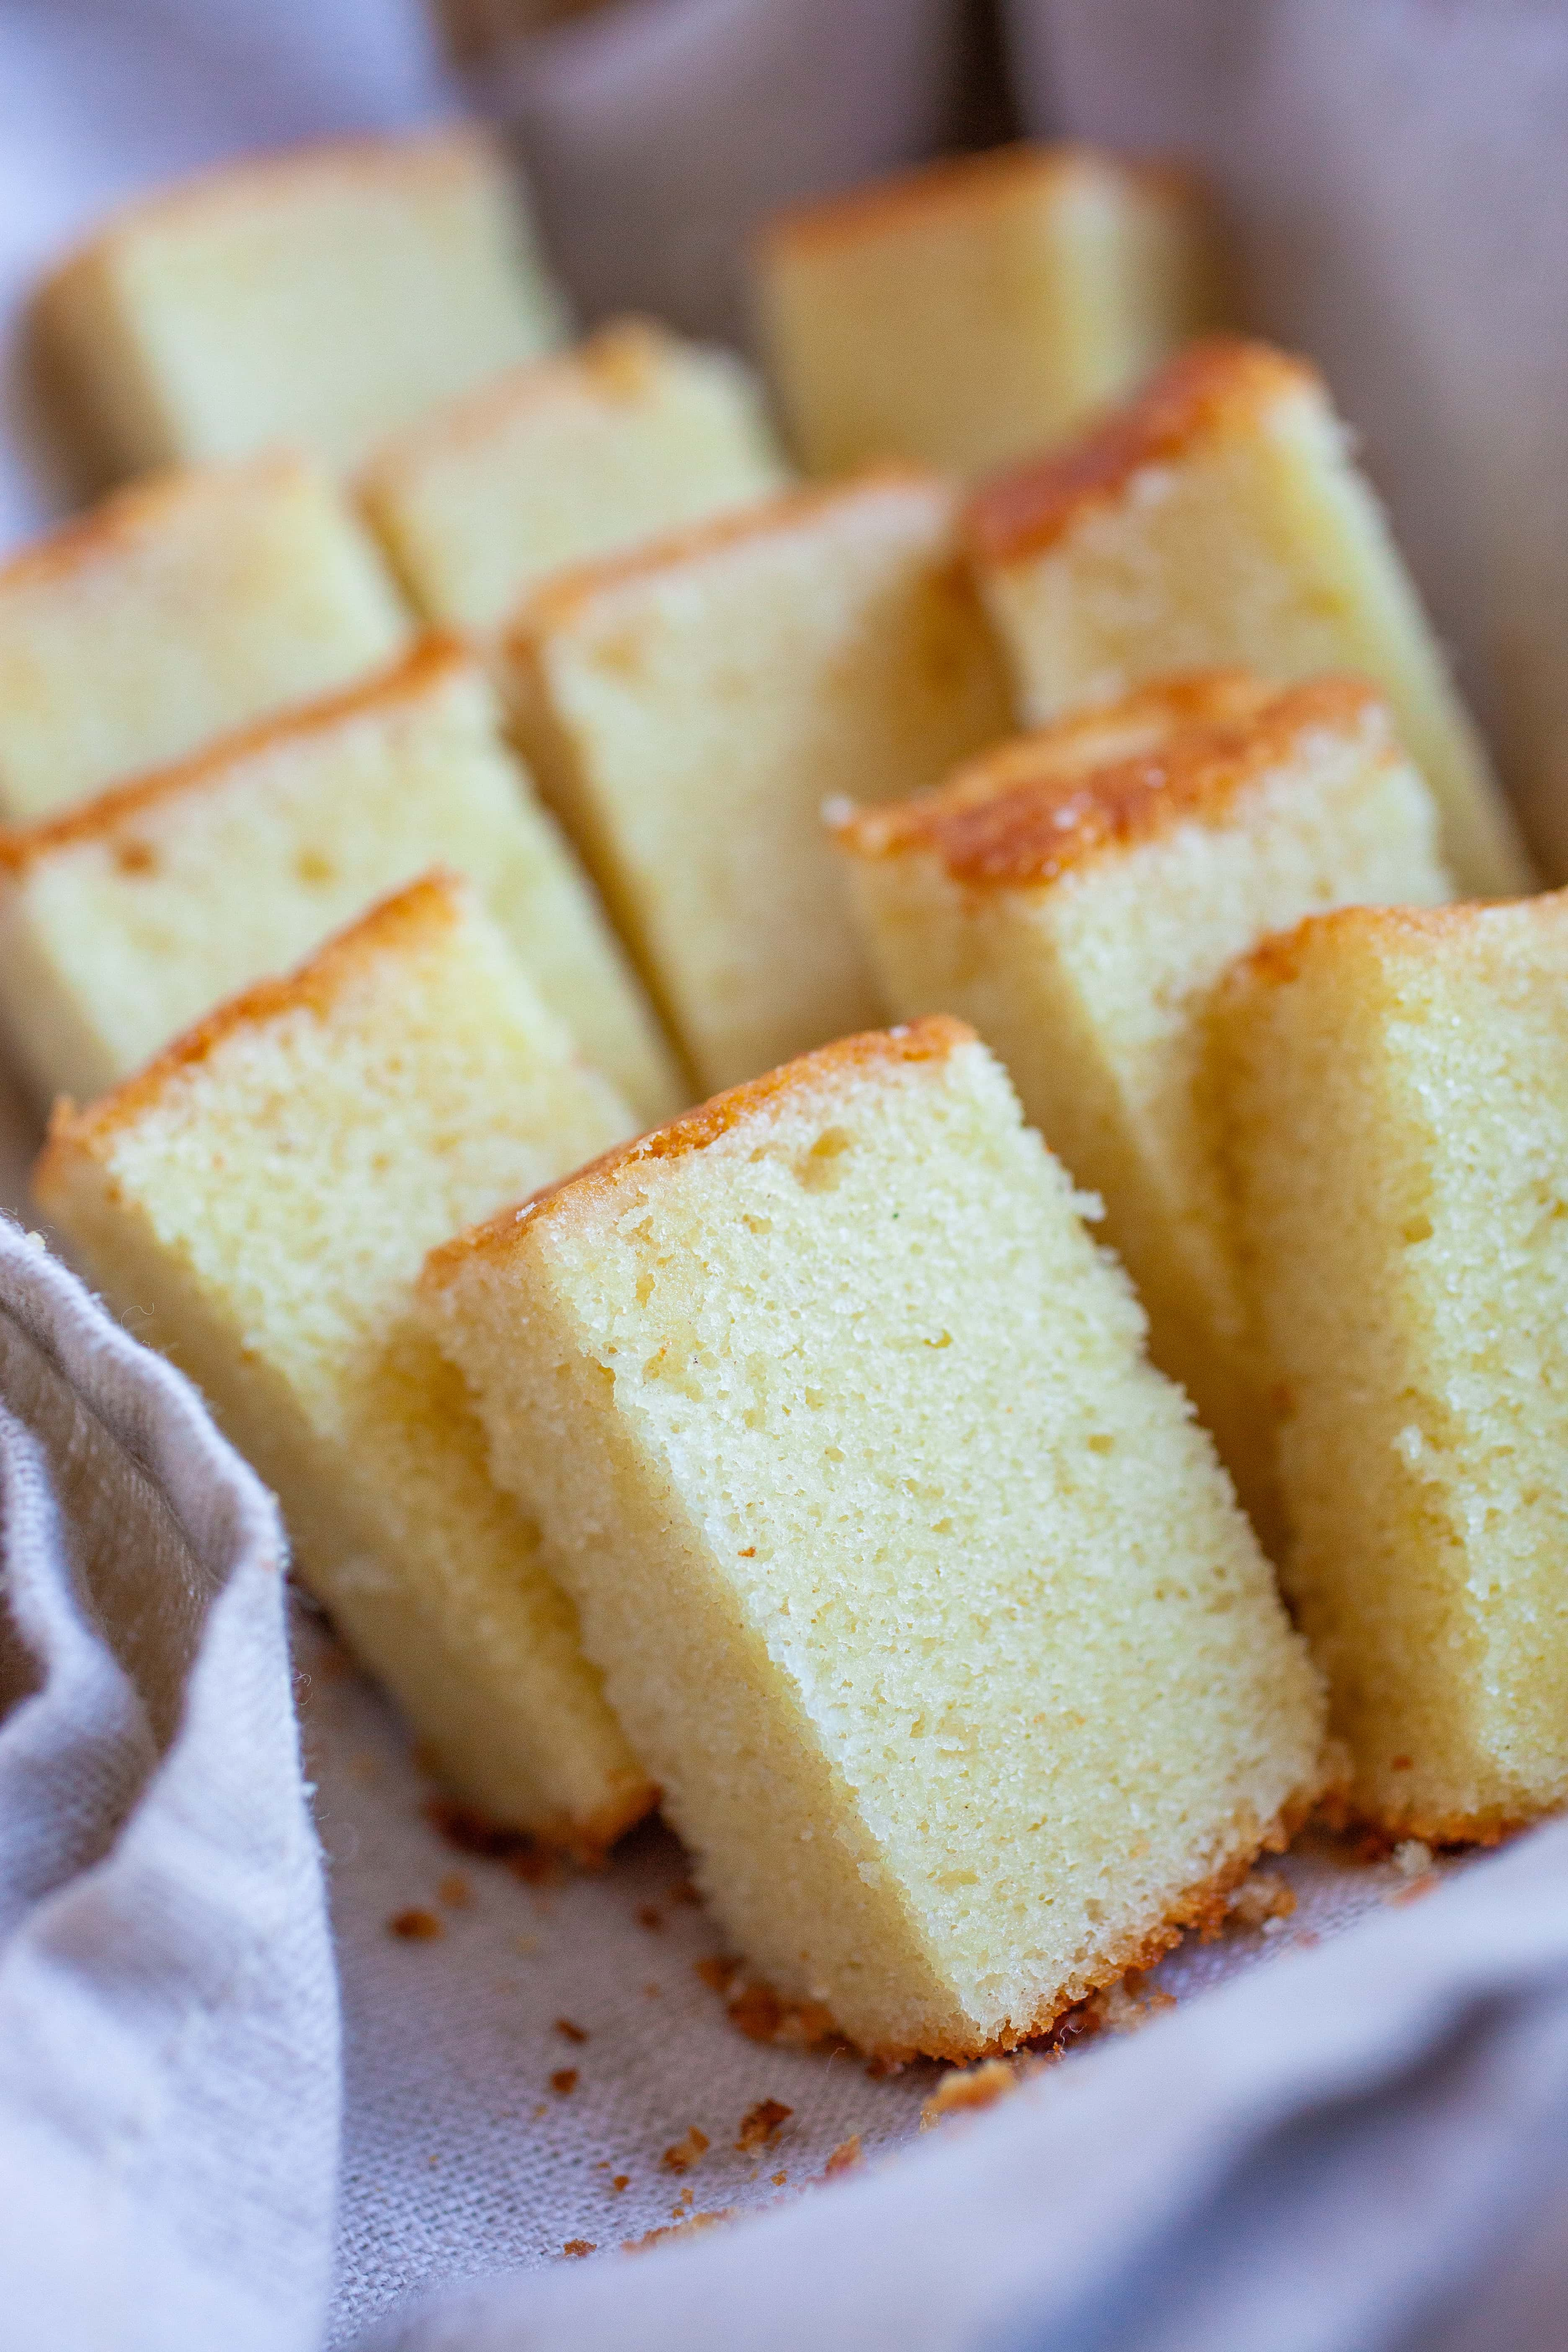 Small pieces of butter cake.